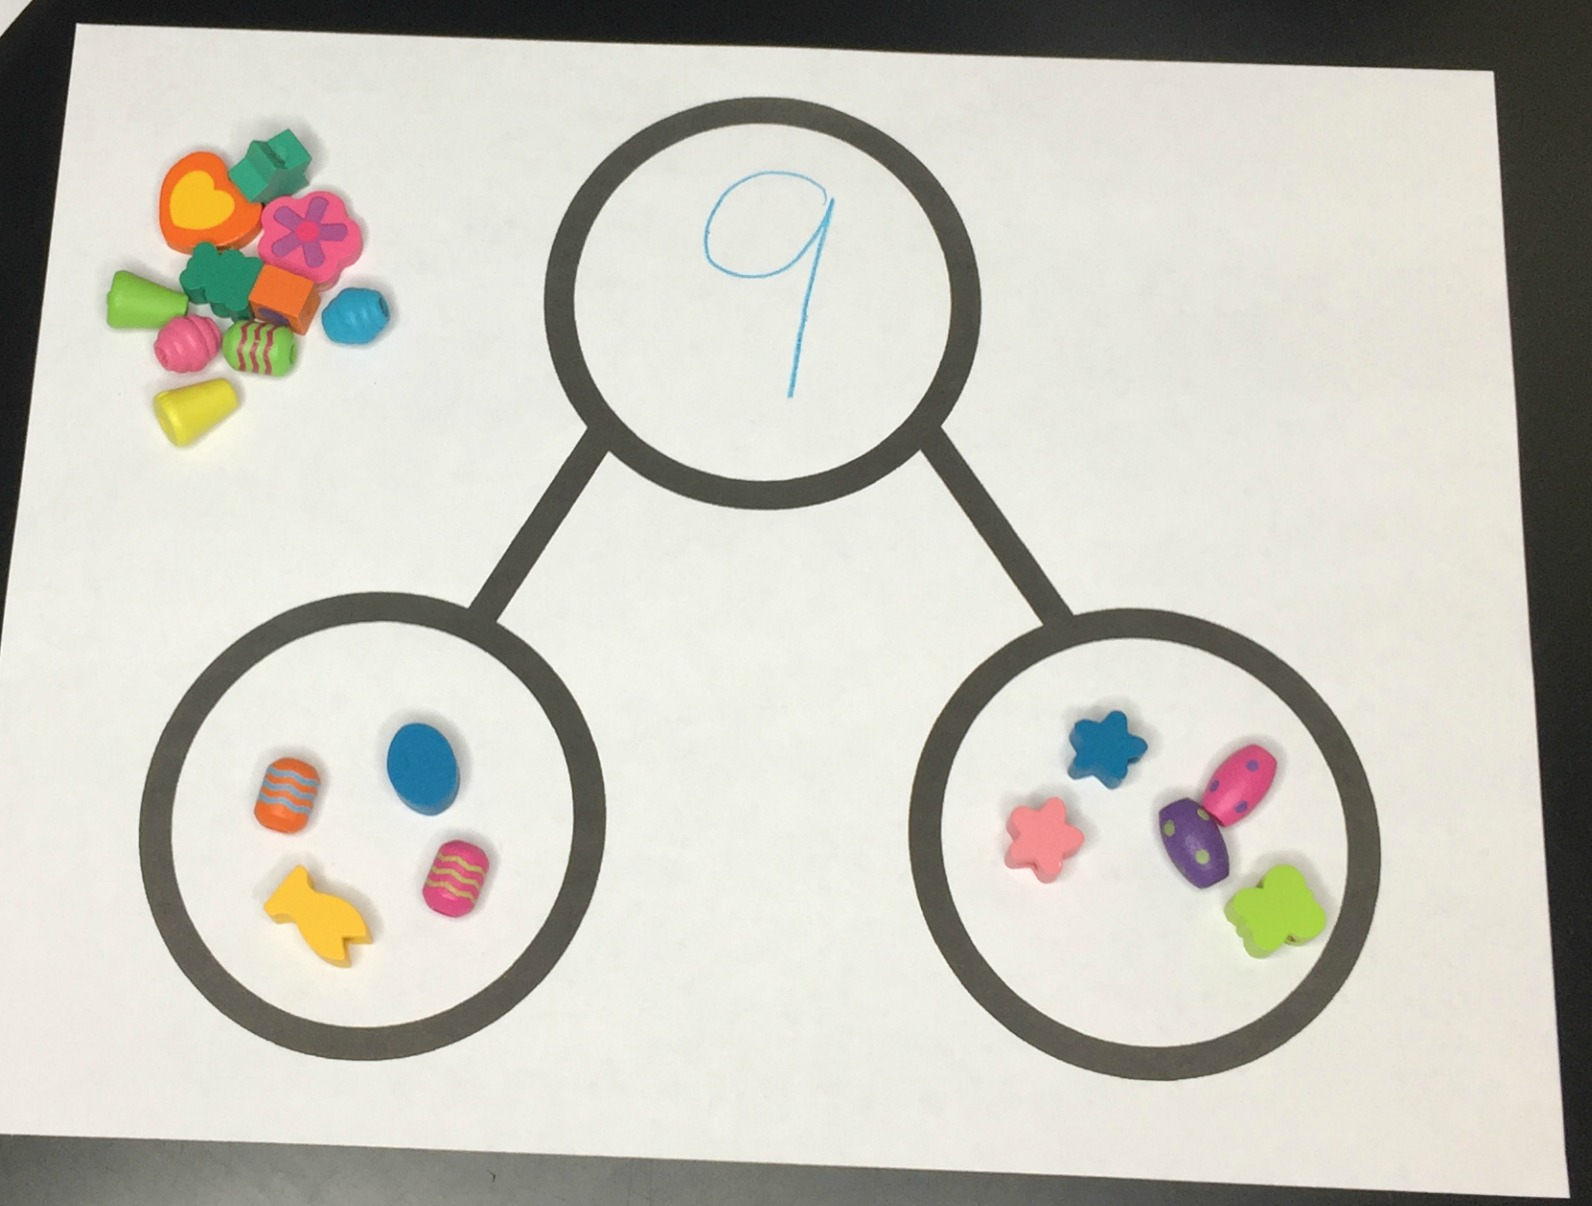 Kids can use manipulatives and number bonds together.